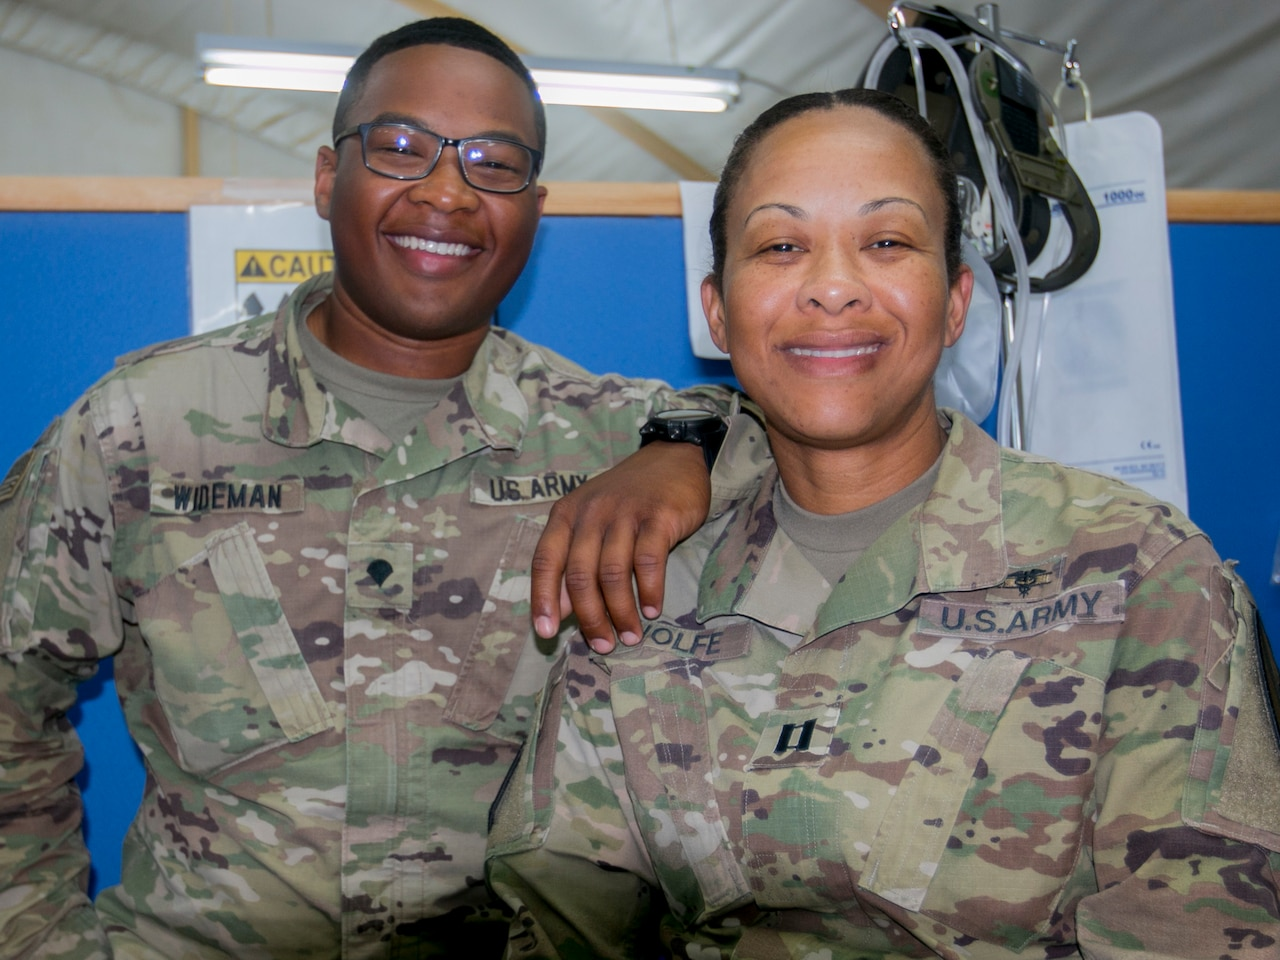 Army Capt. Andrea Wolfe, senior brigade physician assistant, and her son, Army Spc. Kameron Wideman, a behavioral health technician, both assigned to the Brigade Support Medical Company, 215th Brigade Support Battalion, are deployed for nine months to Camp Buehring, Kuwait. Army photo by Staff Sgt. Leah R. Kilpatrick